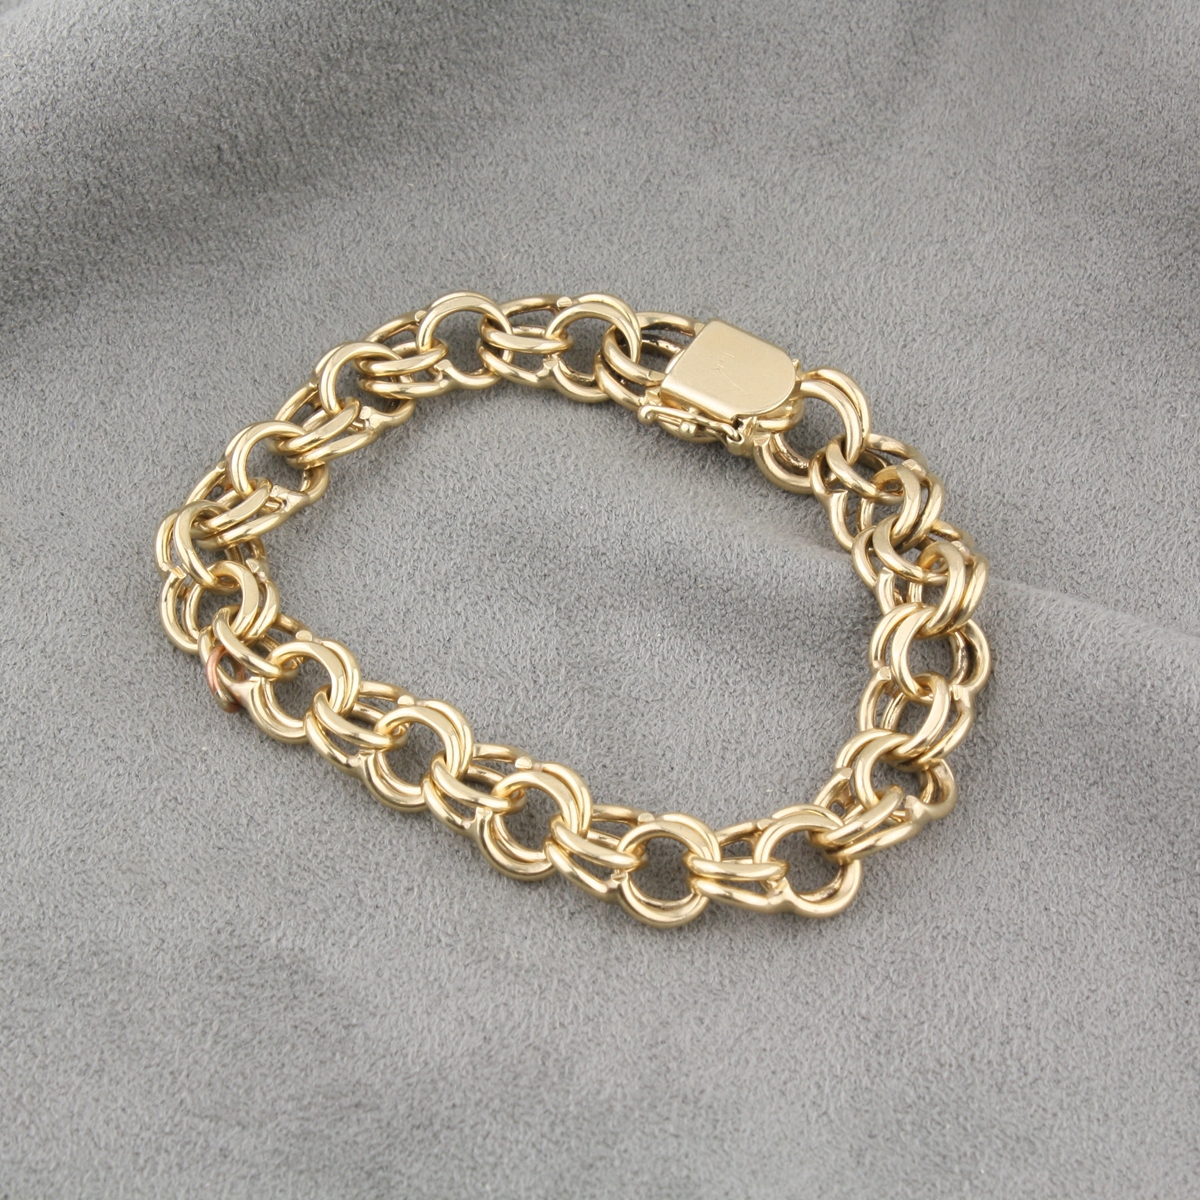 pre owned 14 karat yellow gold charm bracelet. Black Bedroom Furniture Sets. Home Design Ideas